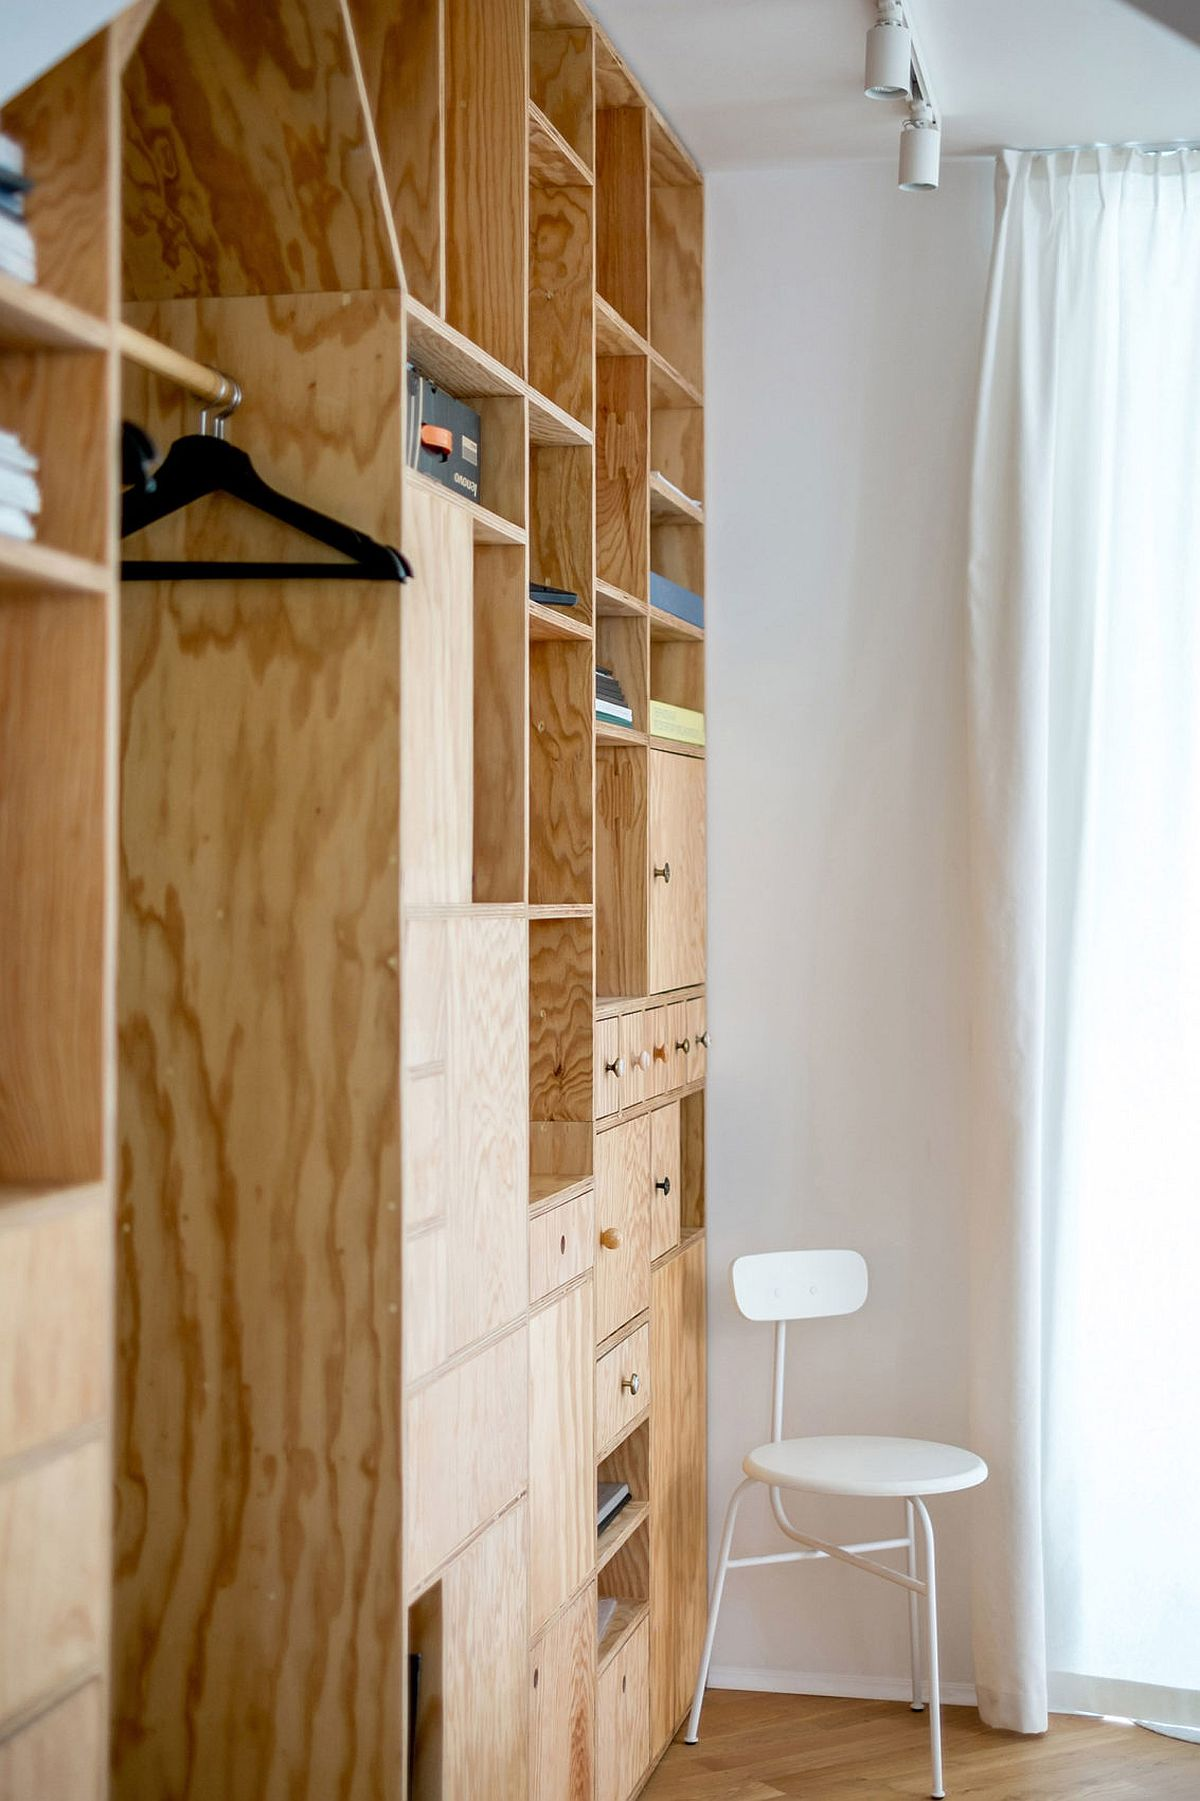 Closer look at the series of cupboards and shelves that make up the wooden partitions